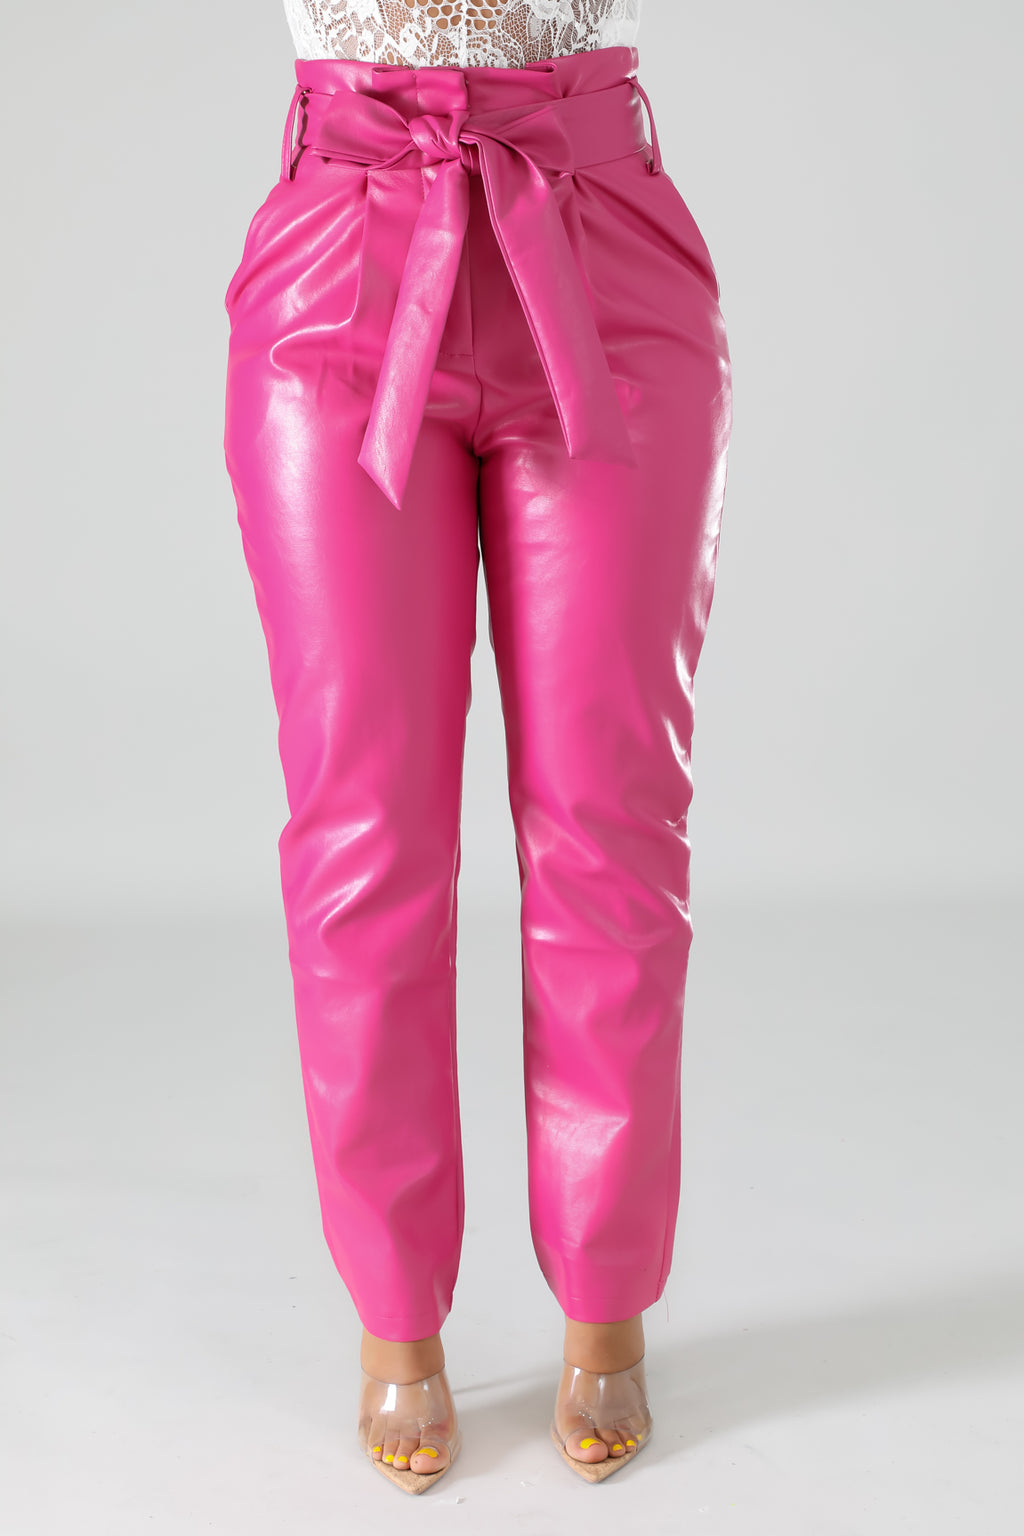 Classy Gal Bow Tie Pants - Classy & Sassy Styles Boutique